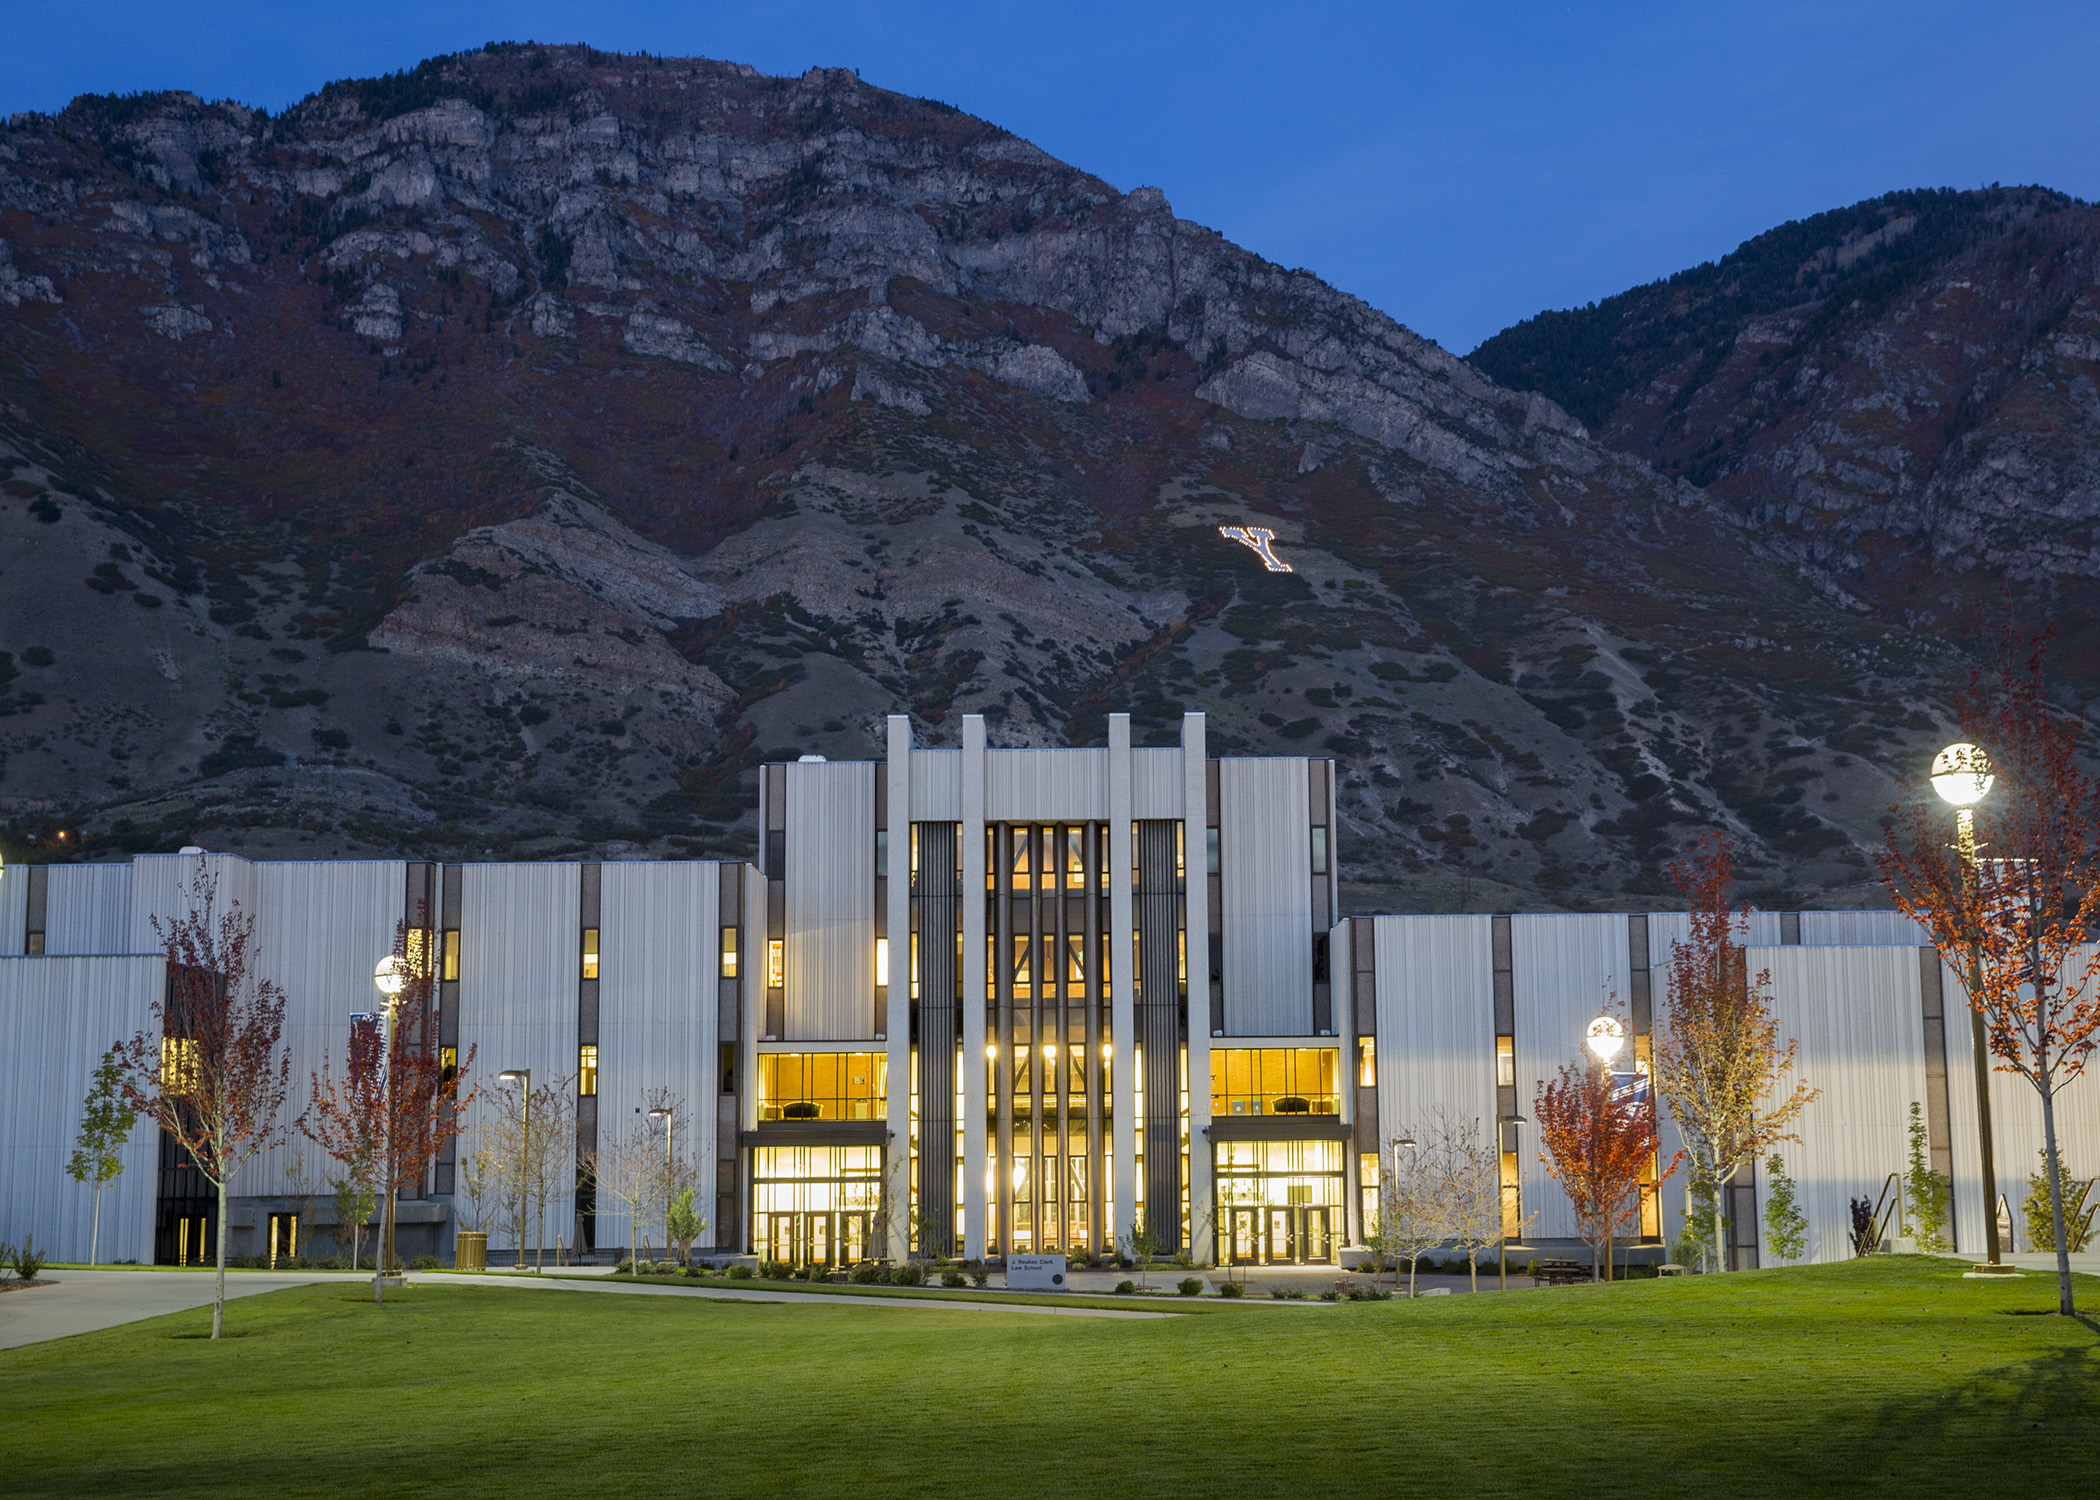 BYU's law school, in the evening